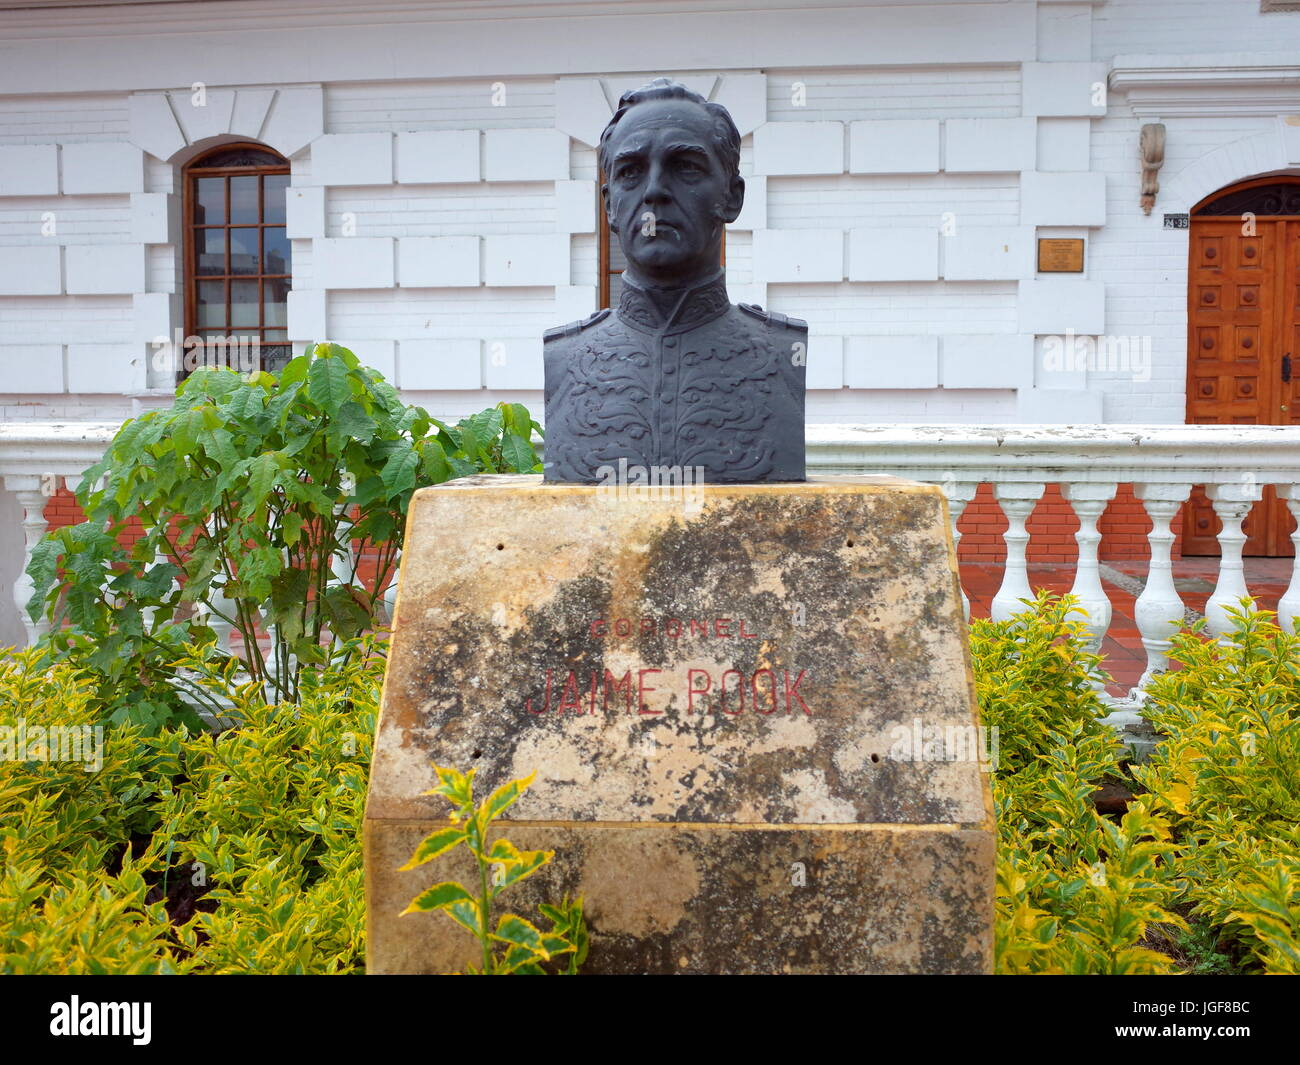 18TH JUNE 2017, PAIPA, COLOMBIA - A bronze bust of James Rooke, commander of the British Legion who helped Simon Stock Photo